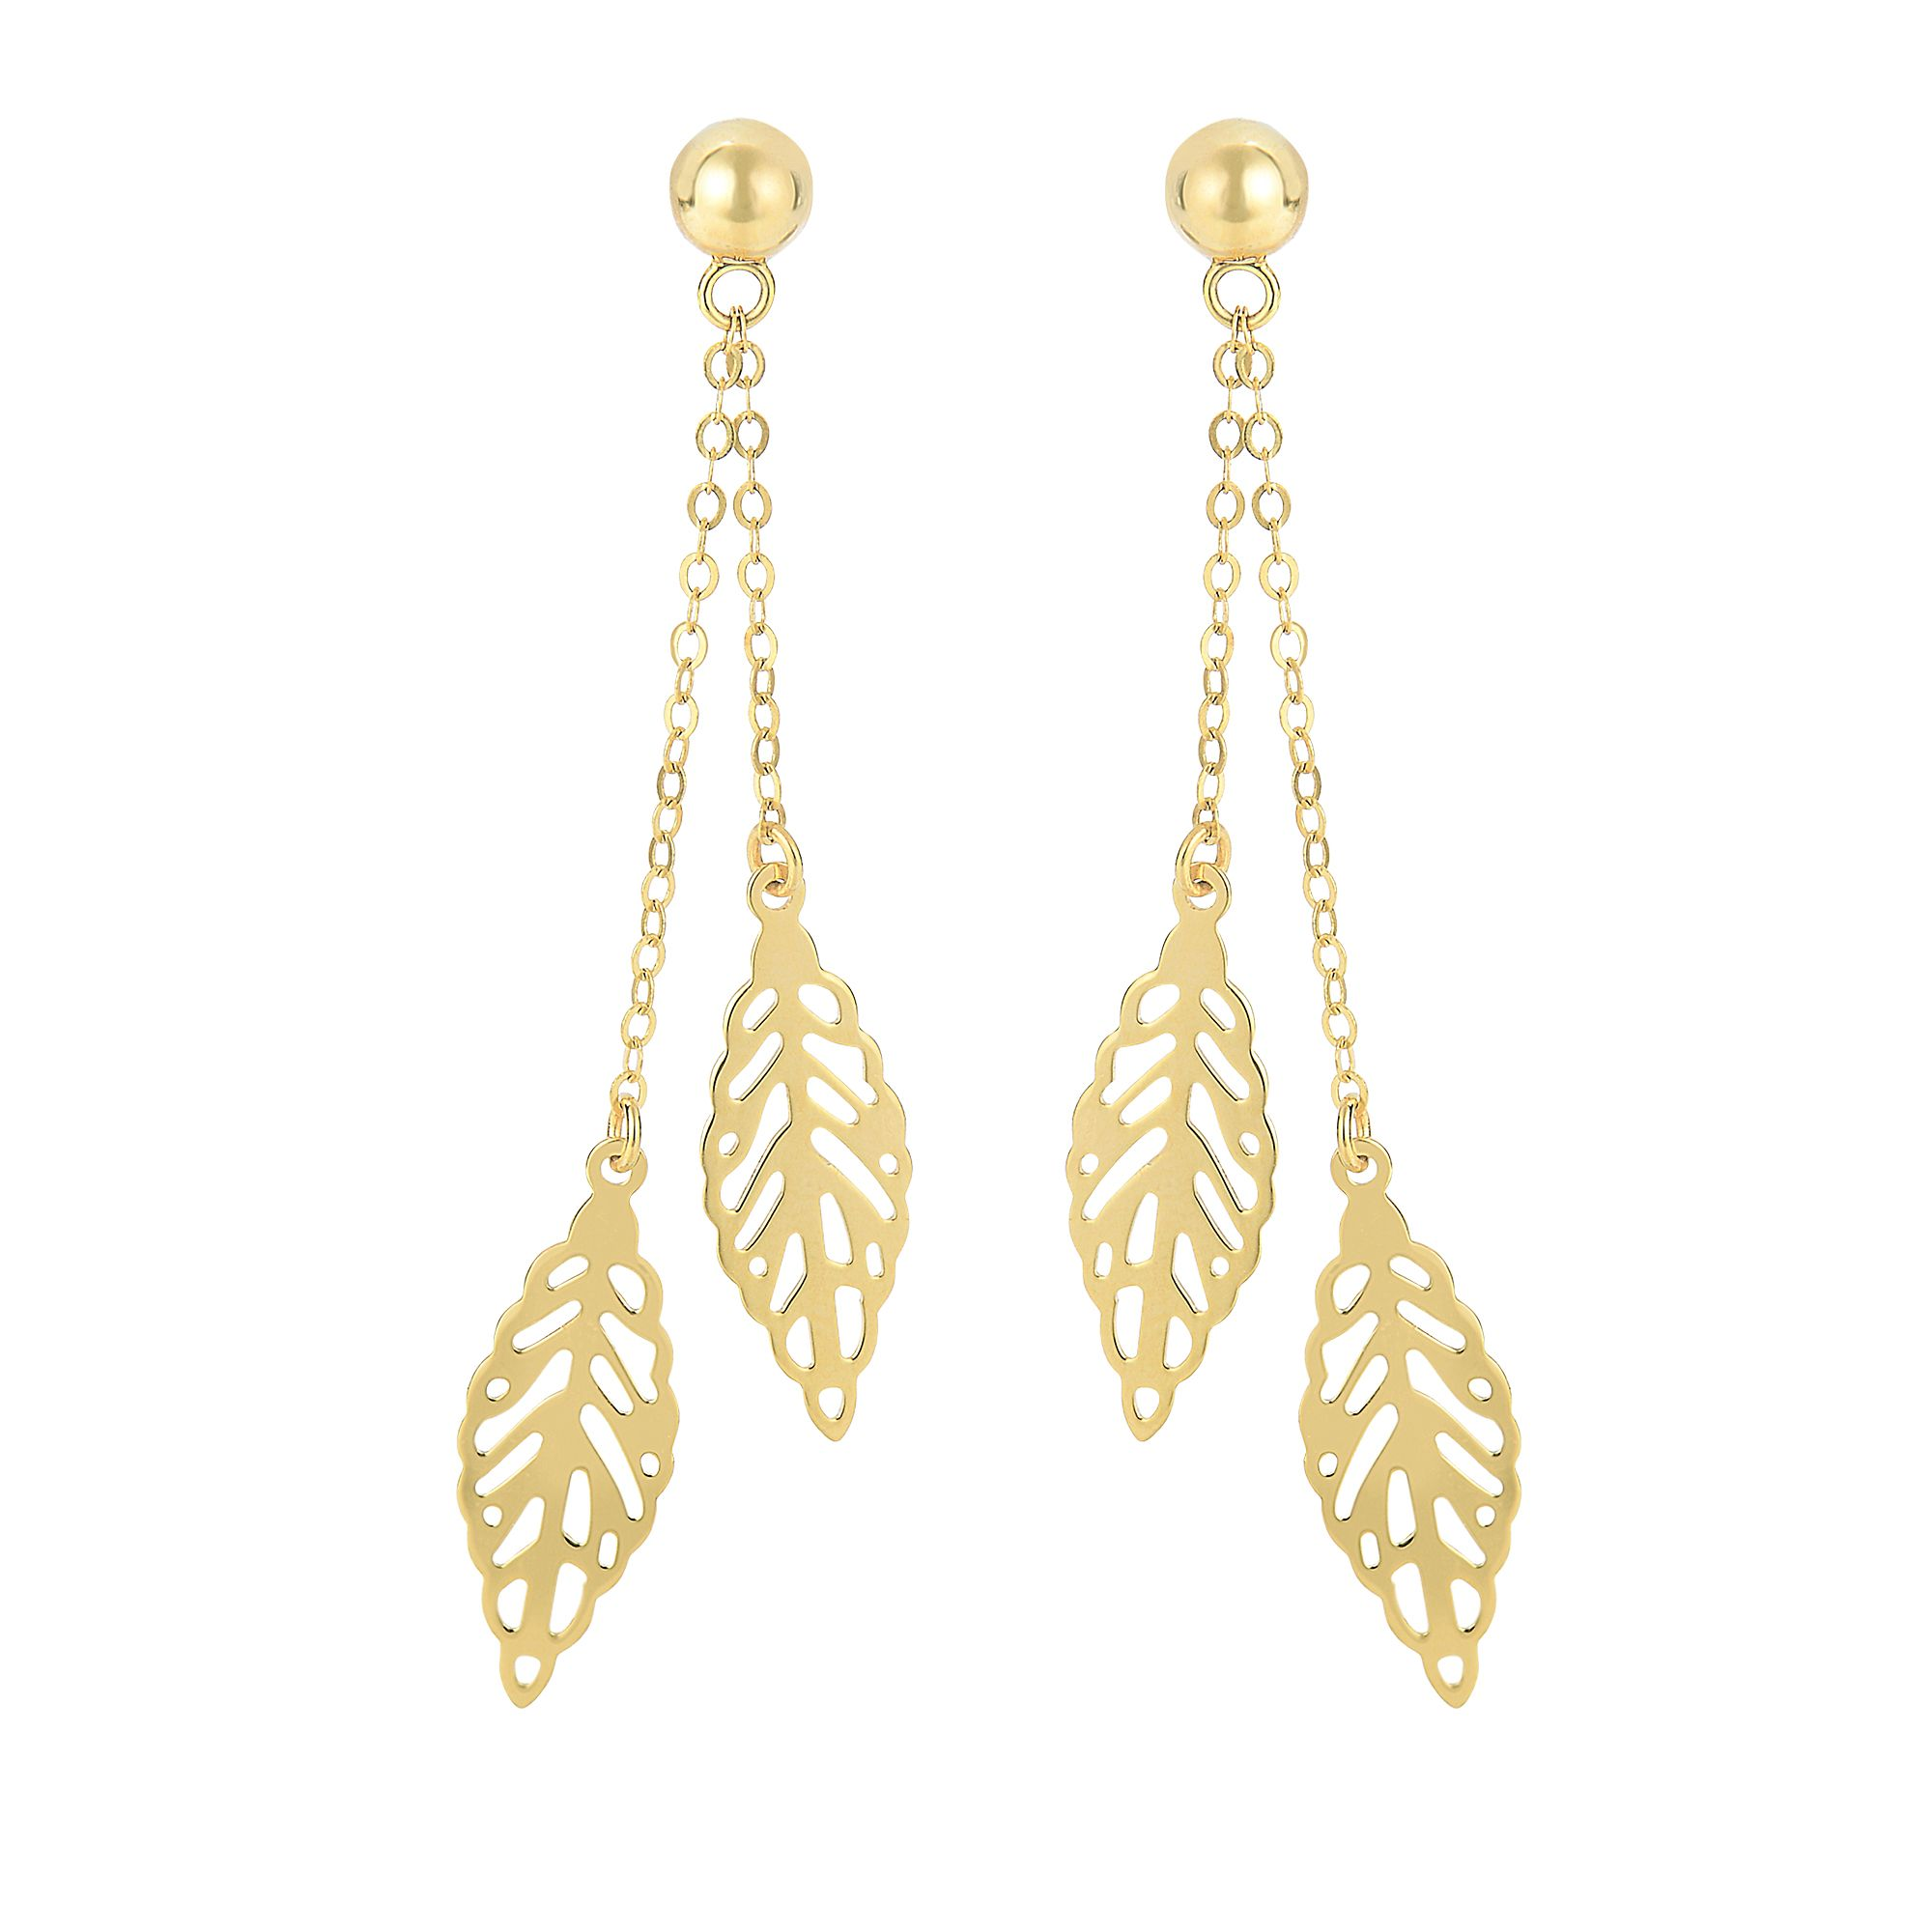 14 Karat Yellow Gold Dangling Leaf Earrings